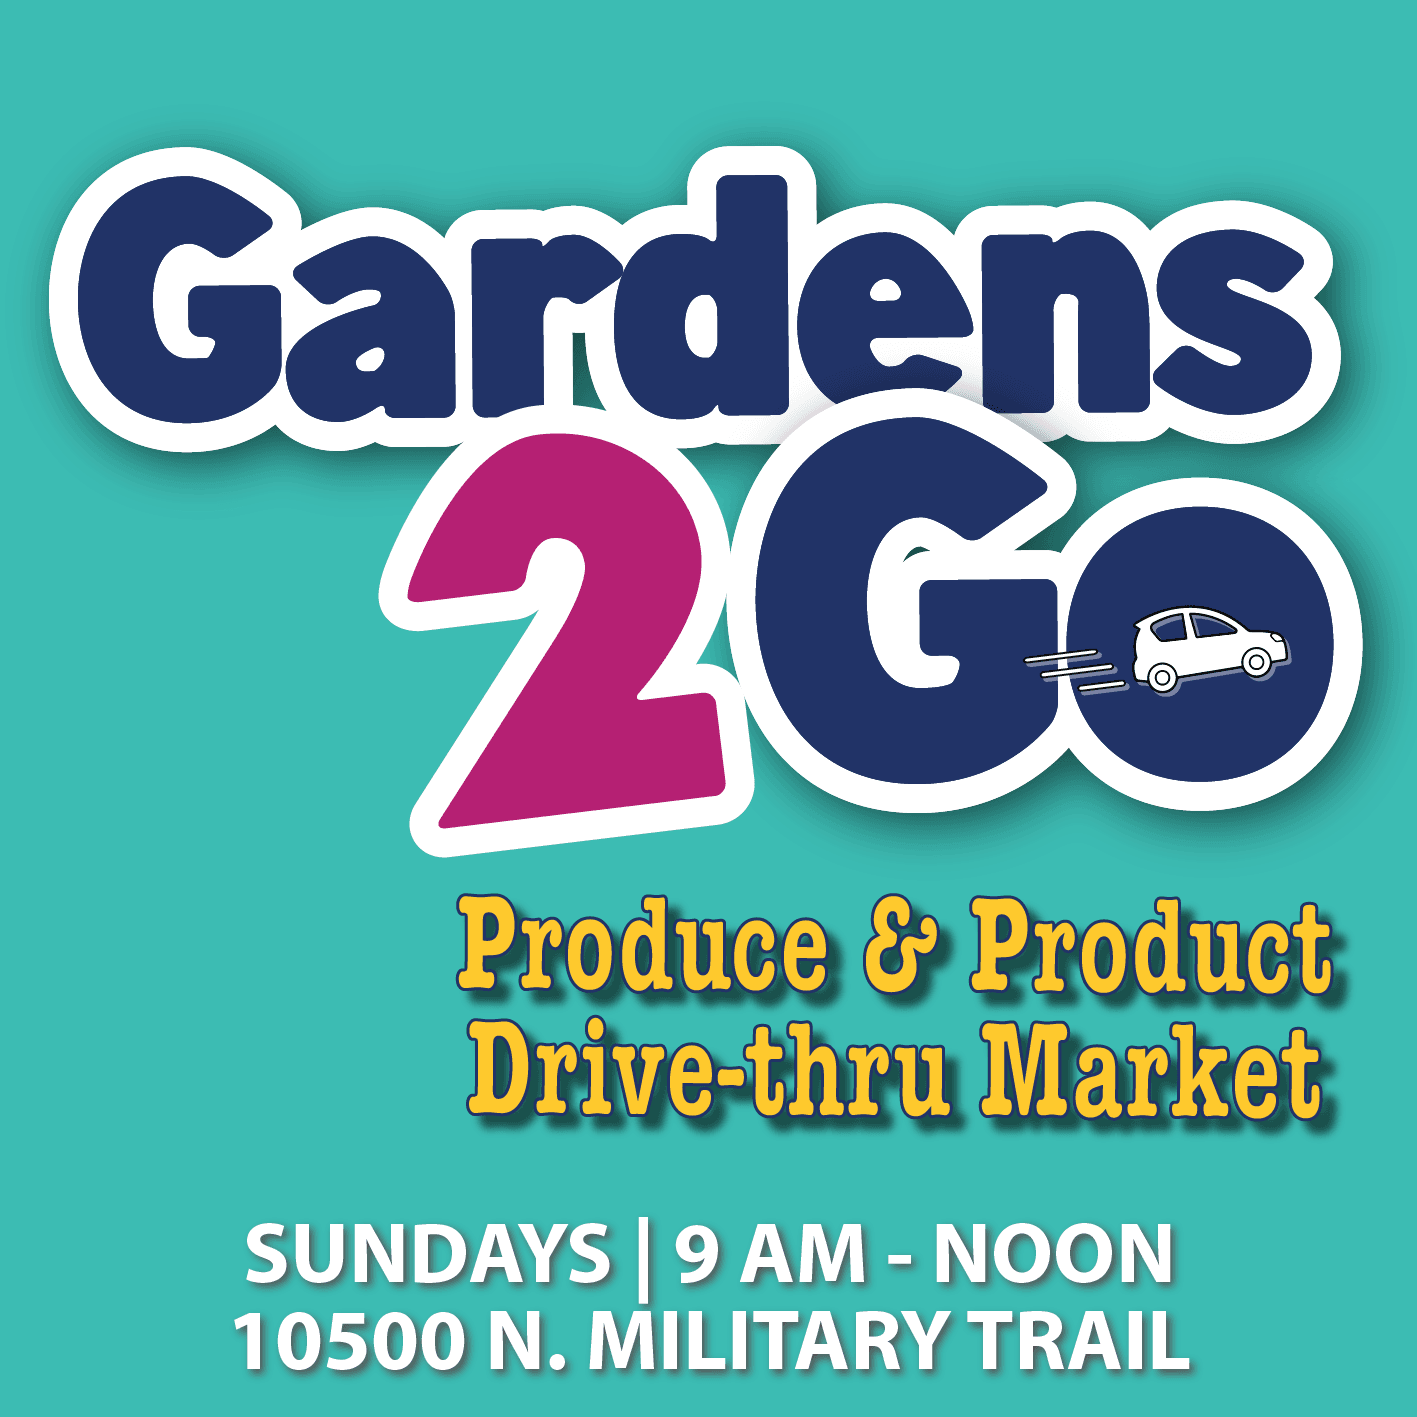 Gardens 2 Go Drive-thru Market on Sundays from 9 a.m. to noon at 10500 N. Military Trail.